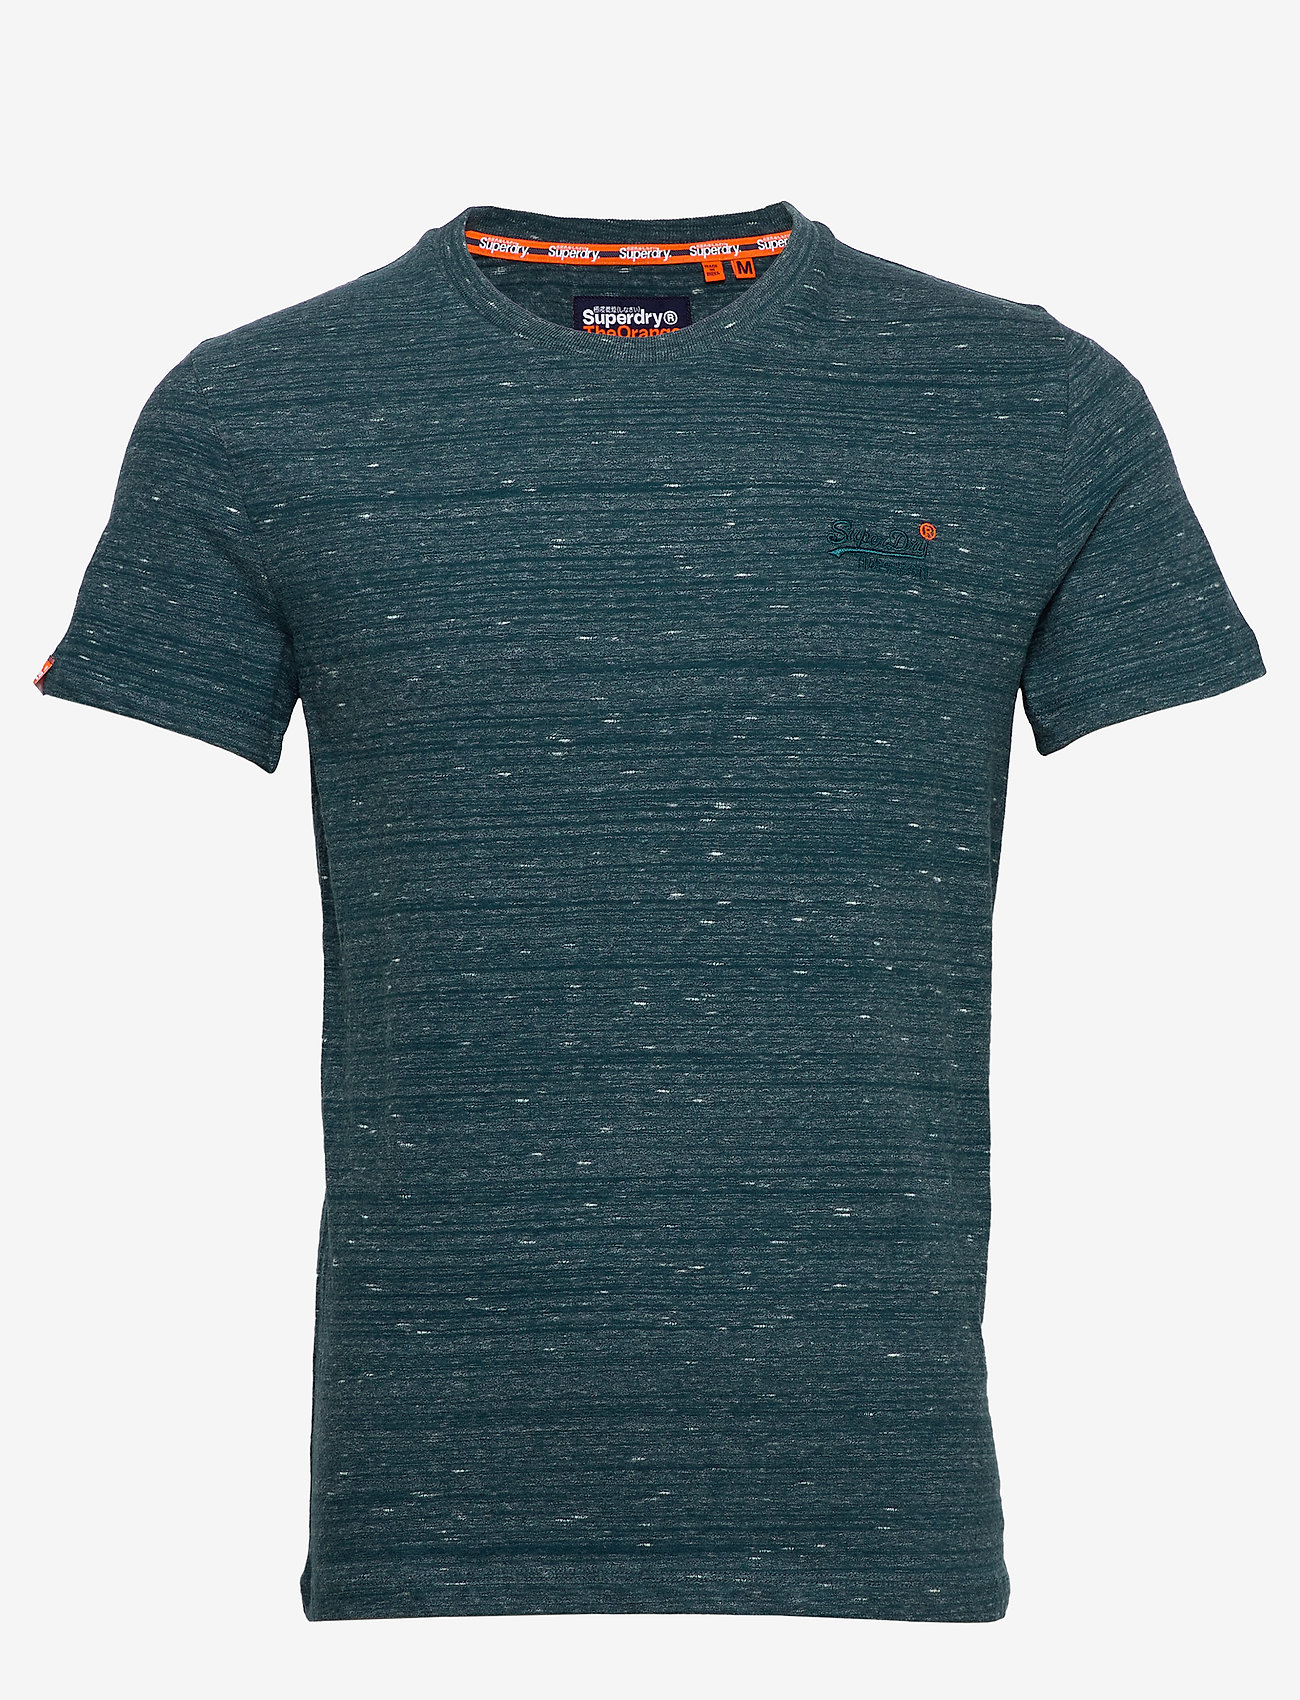 Superdry Ol Vintage Embroidery Tee - T-shirts DEEP TEAL SPACE DYE Q16R5MQH